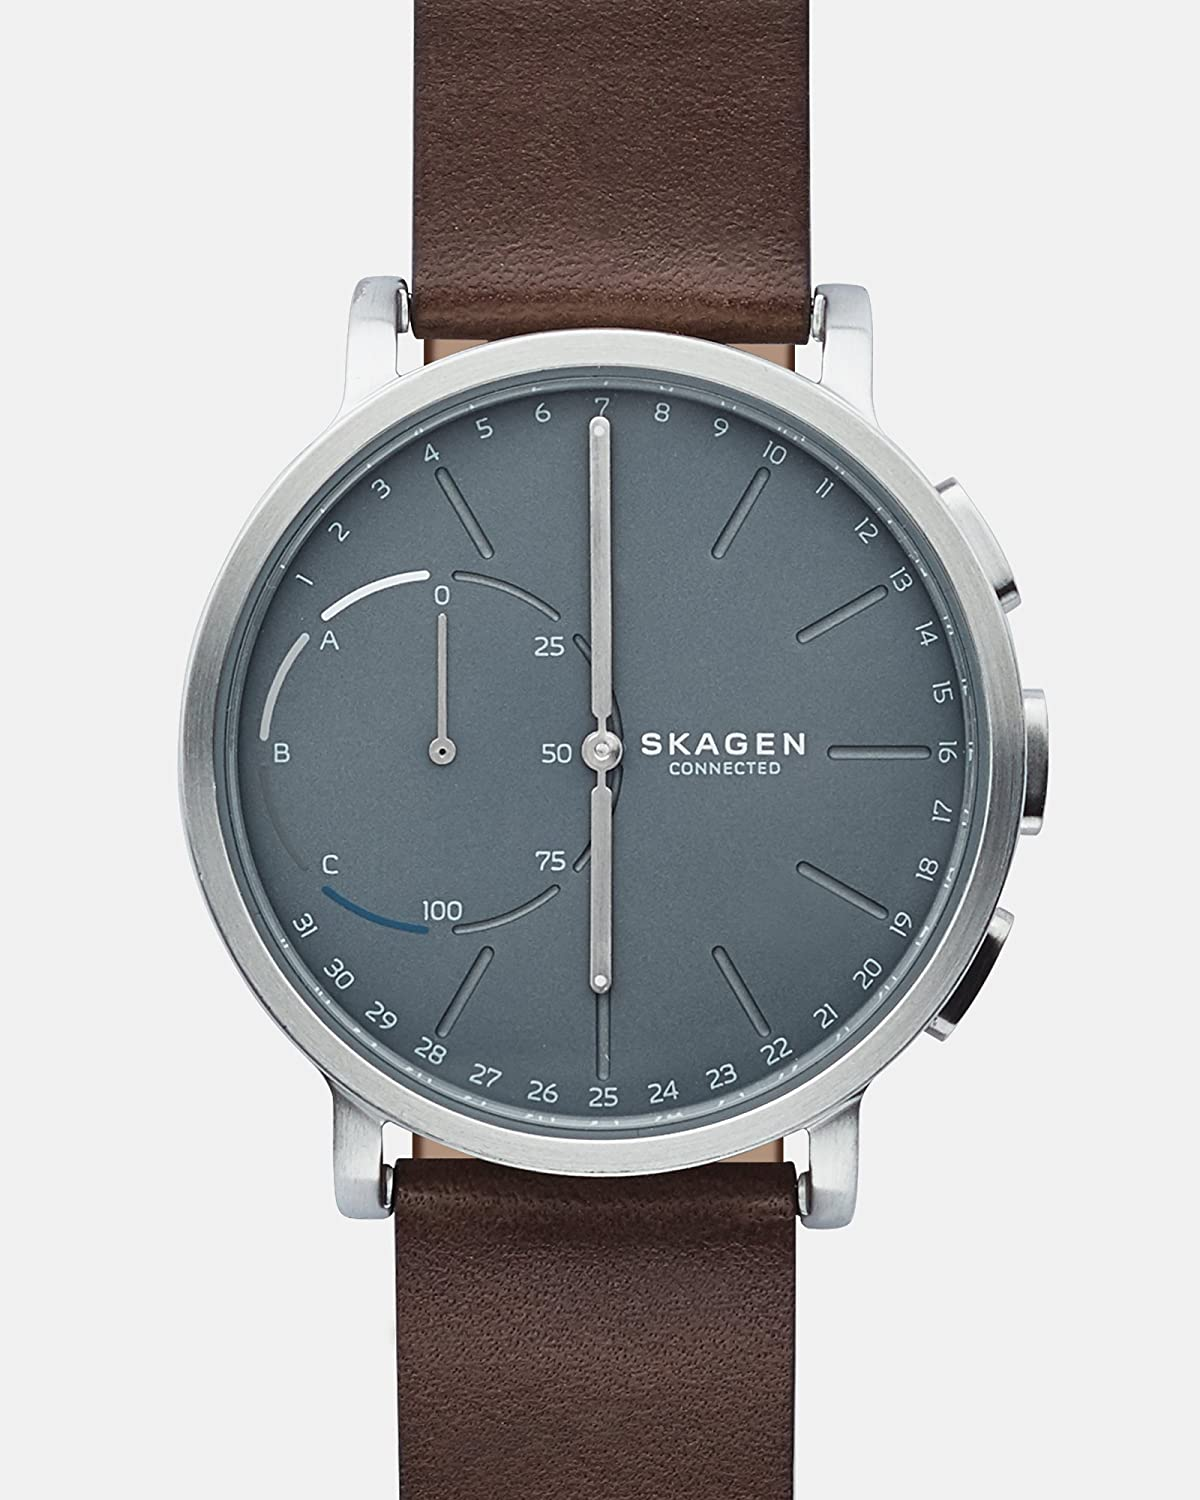 Skagen Mens 42mm Connected Hybrid Leather Smart Watch